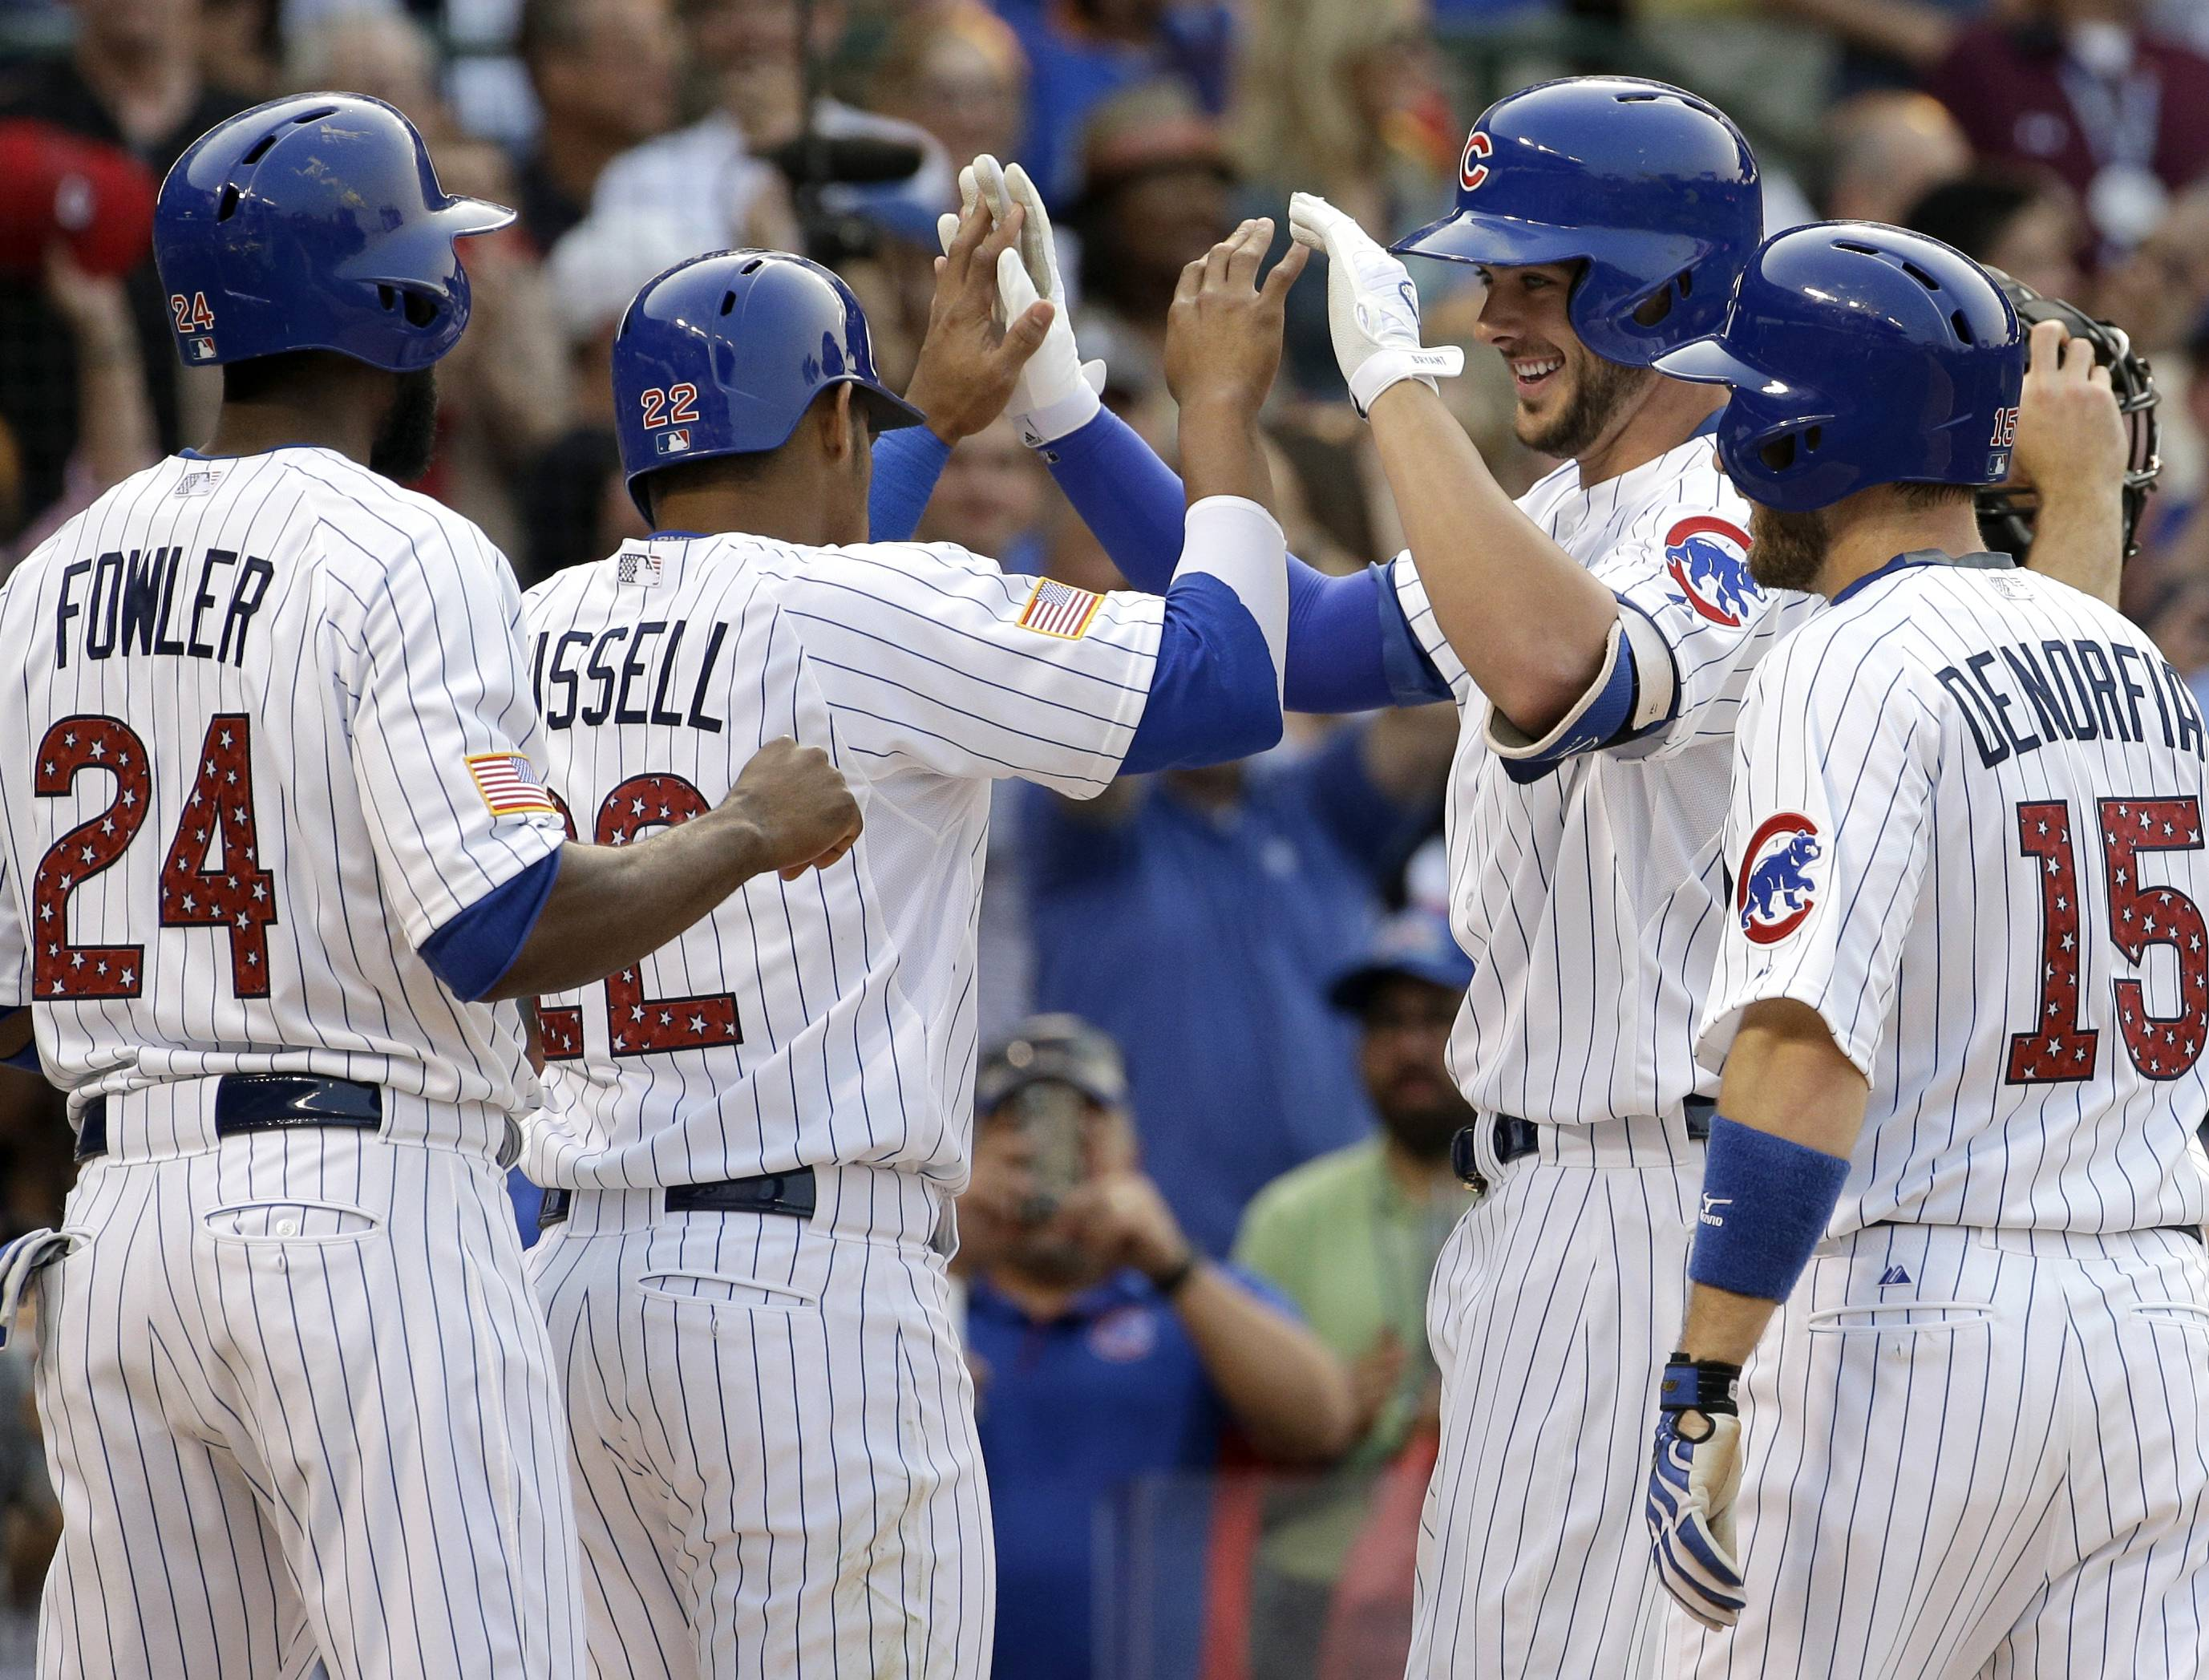 The Cubs' Kris Bryant, second from right, celebrates with teammates Addison Russell (22), Dexter Fowler (24) and Chris Denorfia (15) after hitting a grand slam during the second inning Saturday night against the Miami Marlins at Wrigley Field.